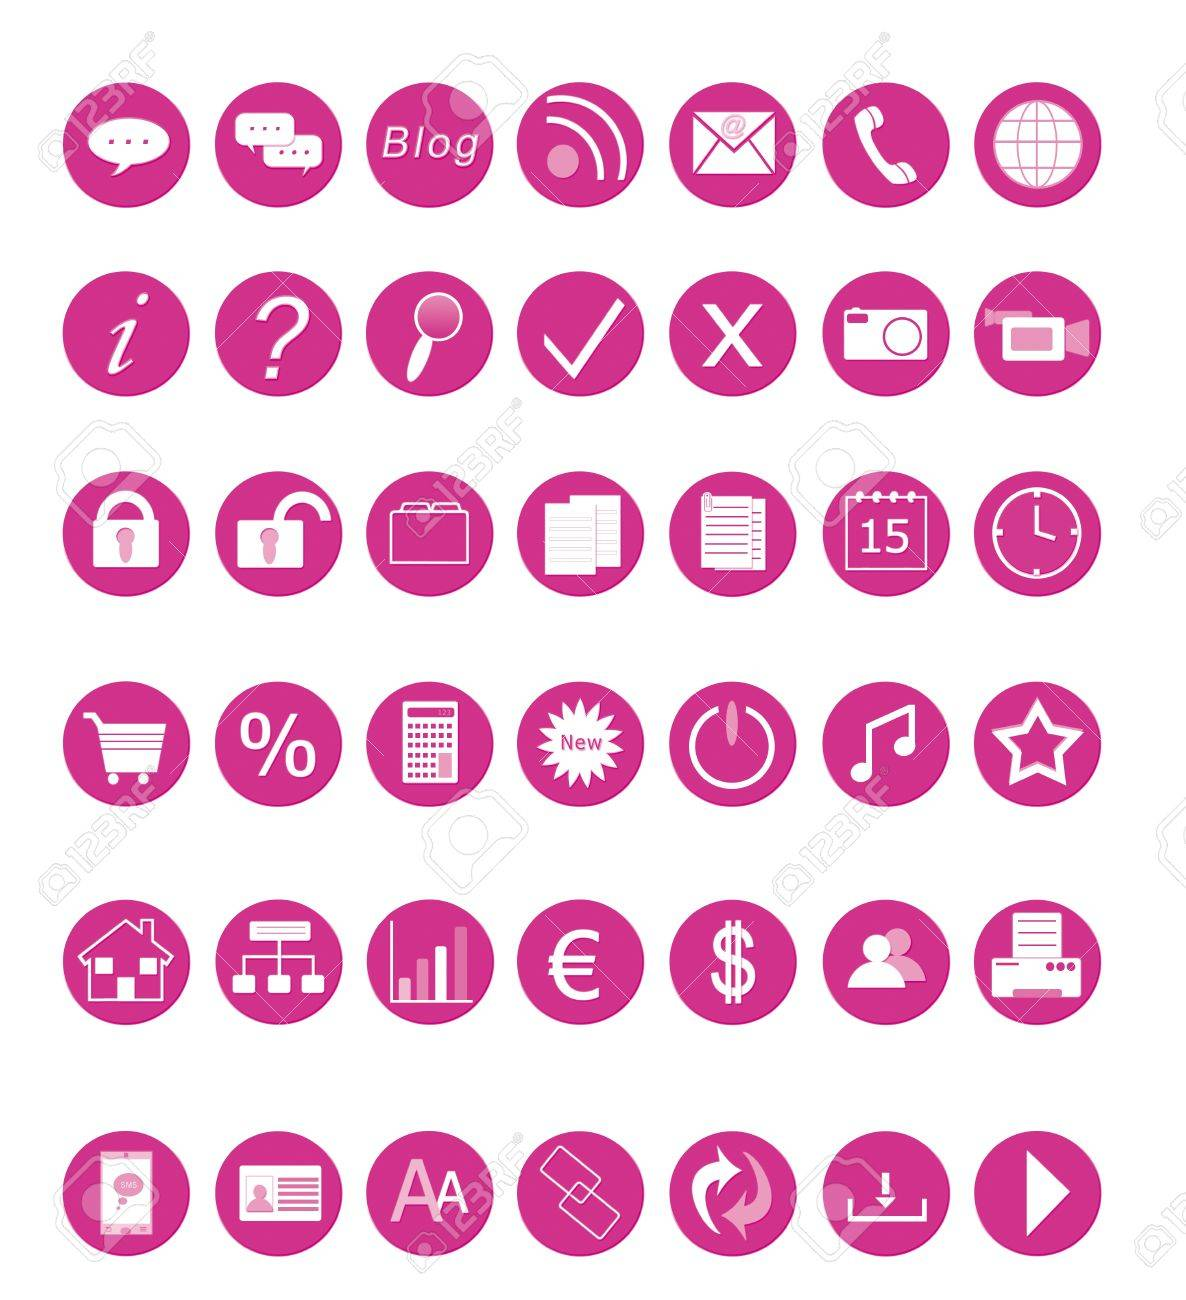 Set of icons for the Web in pink colors Stock Photo - 12332172